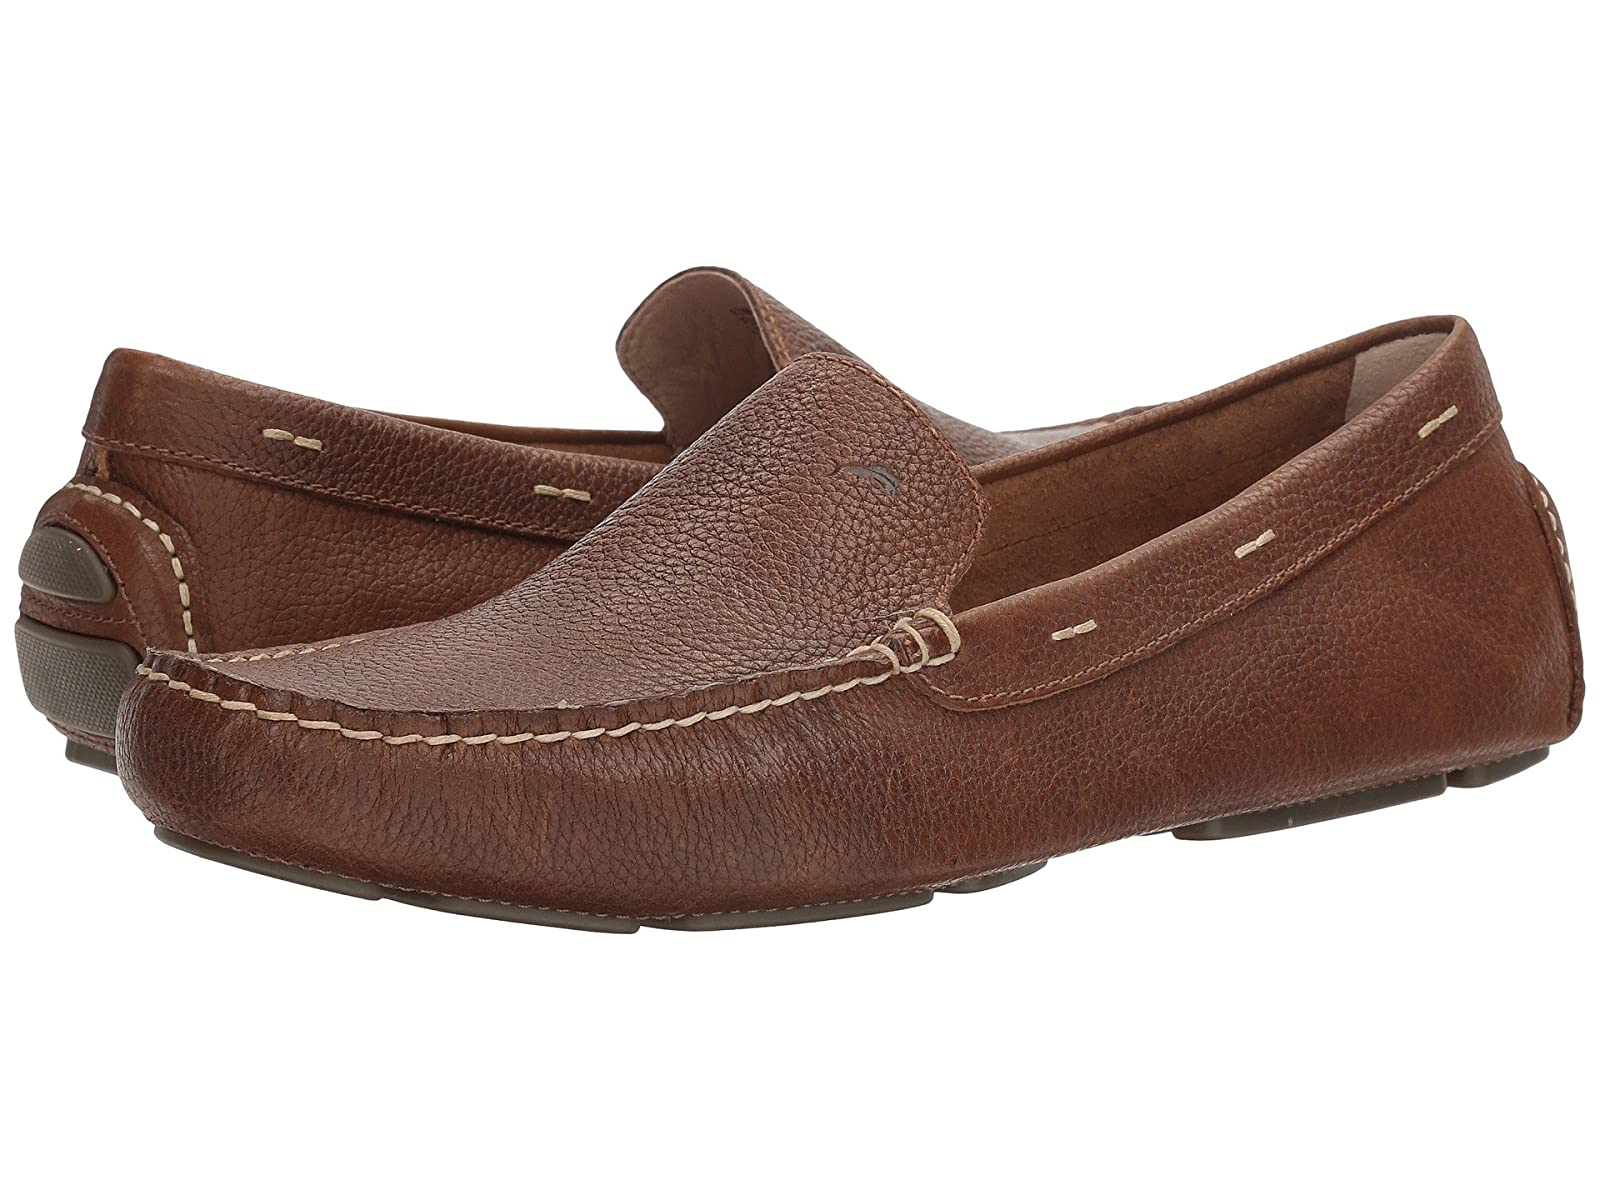 Tommy Bahama PagotaAtmospheric grades have affordable shoes